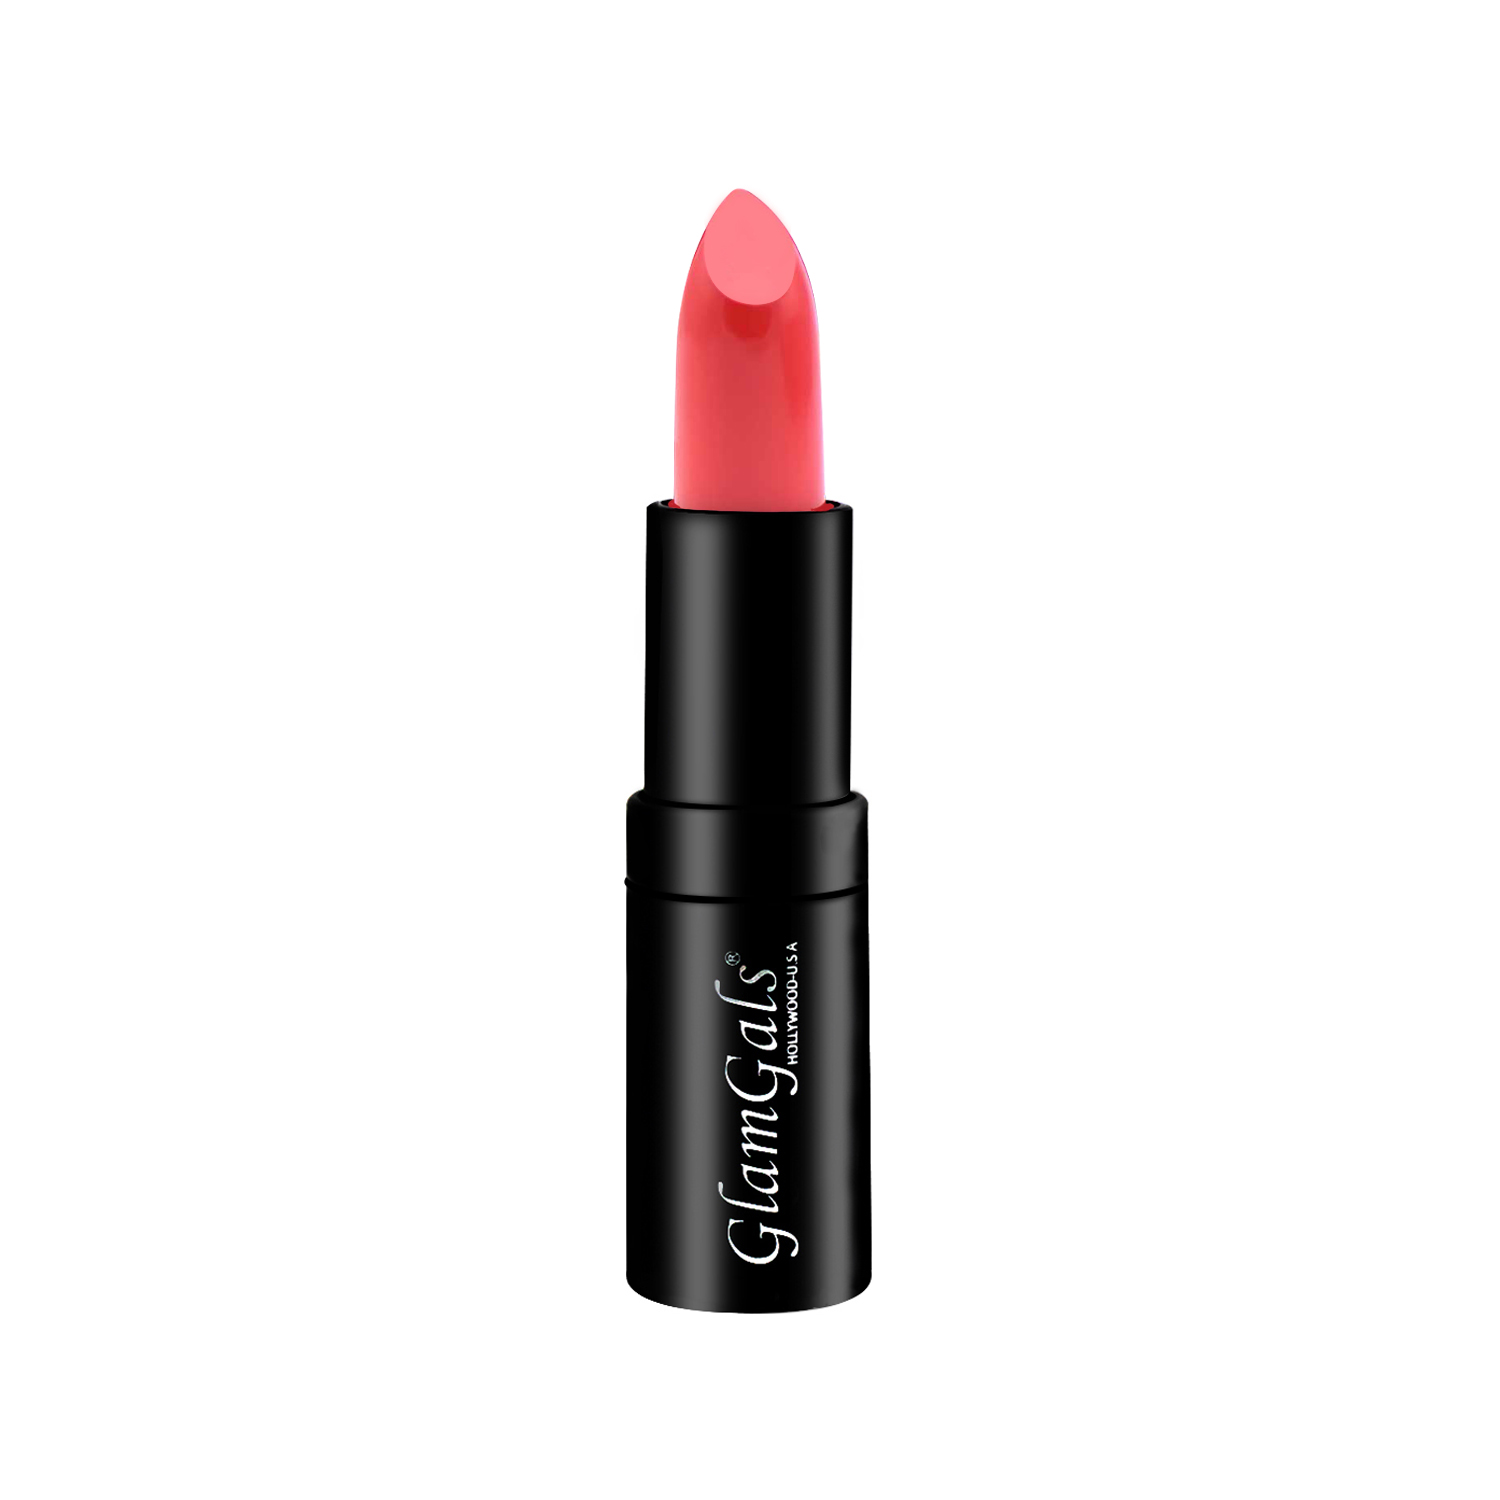 Glamgals Matte Finish kissproof lipstick  Vermillion Orange  3.8gm